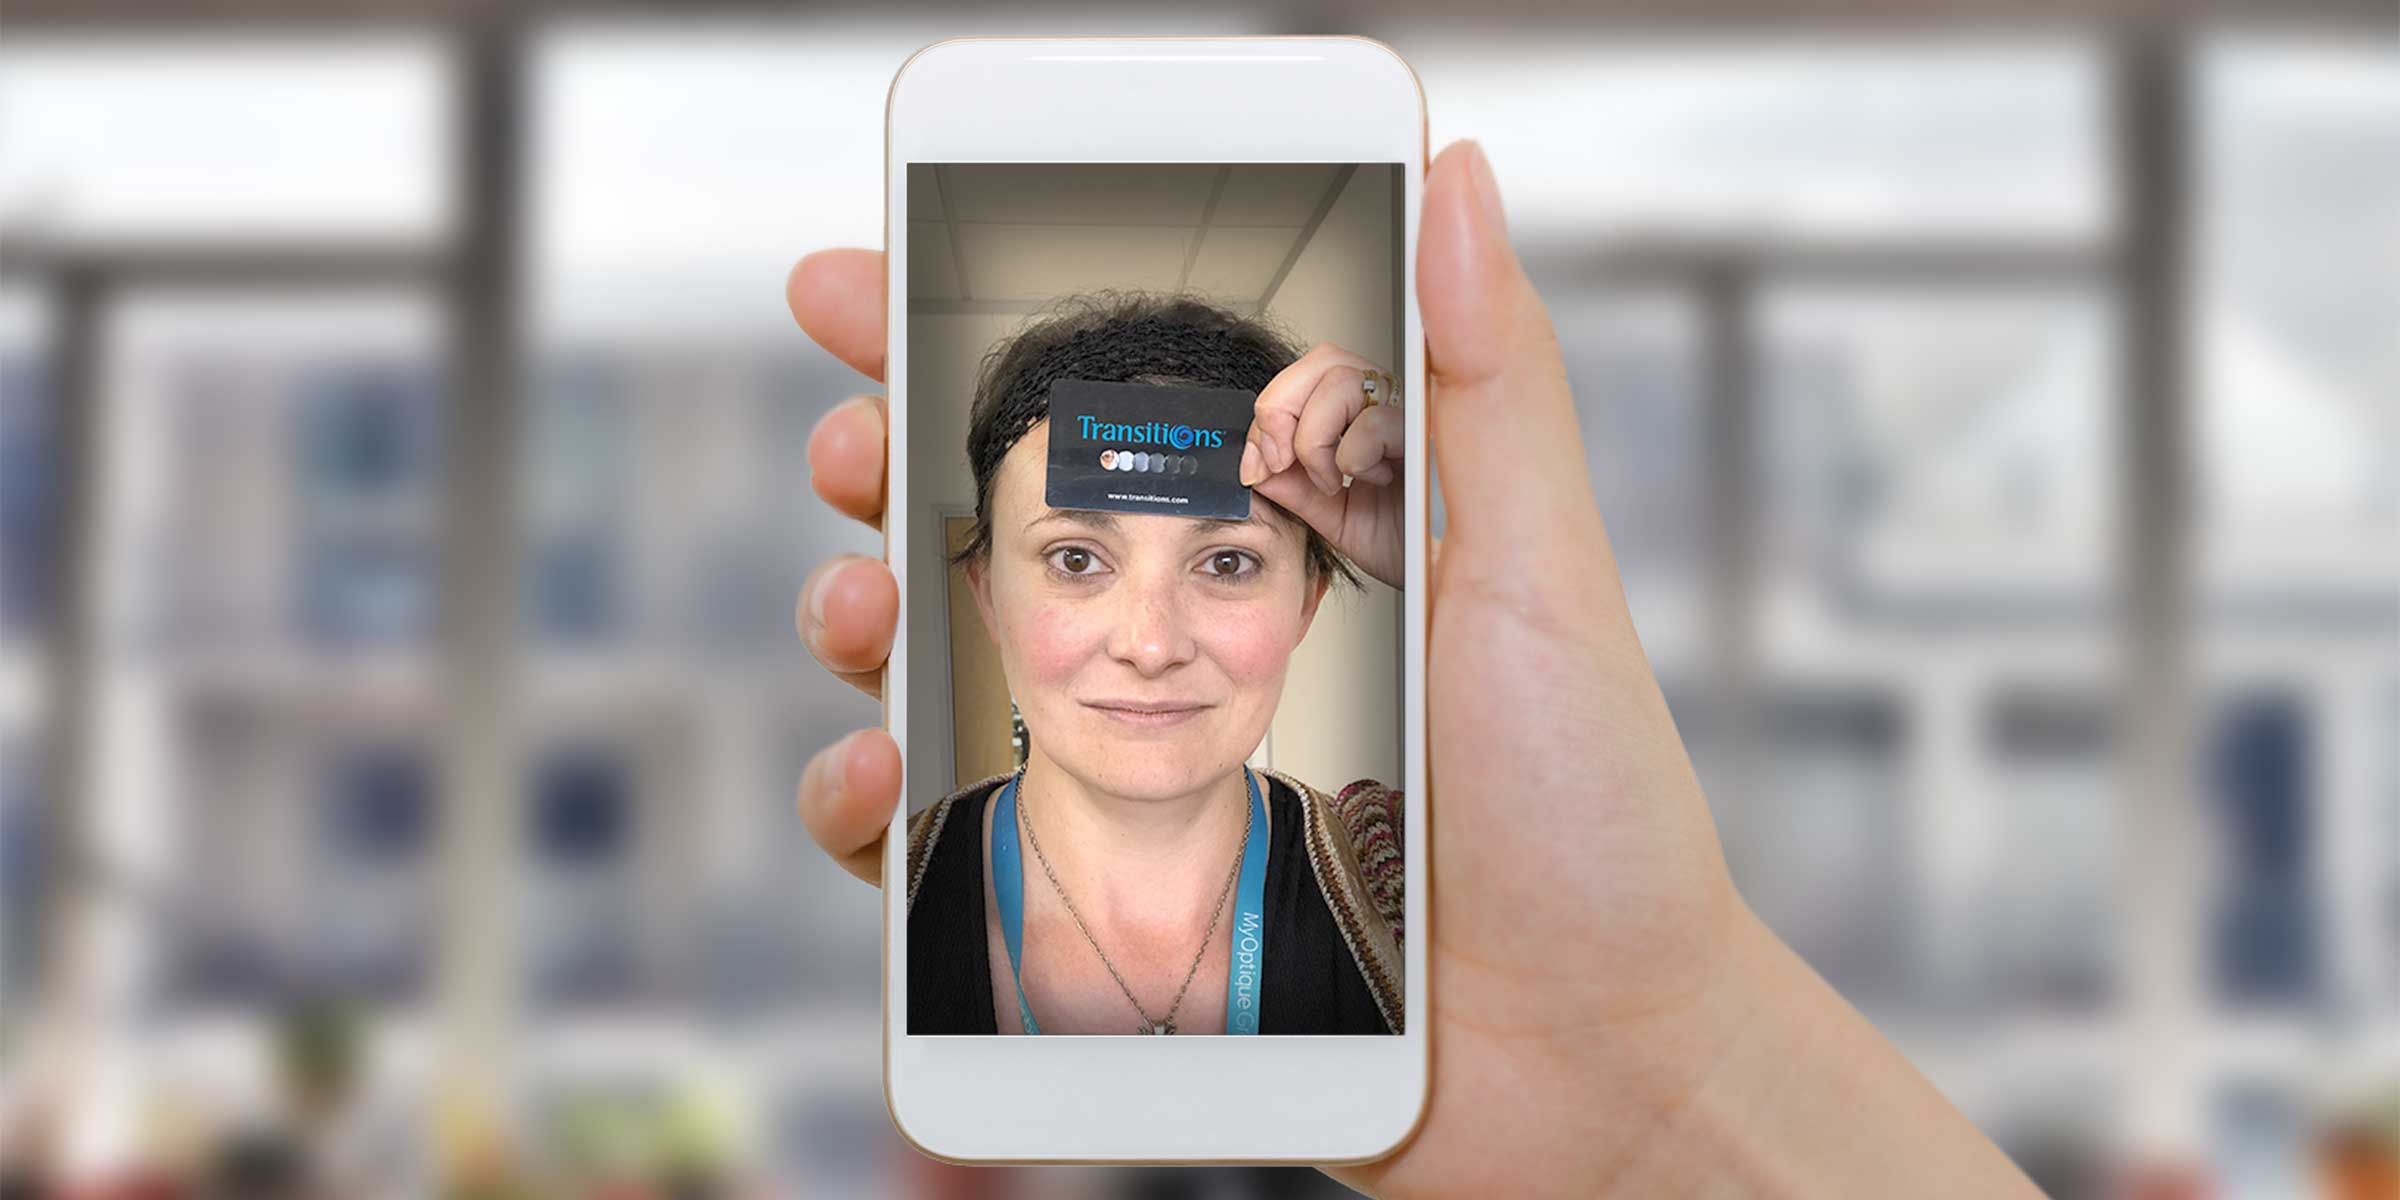 A woman taking a selfie with a card on her forehead